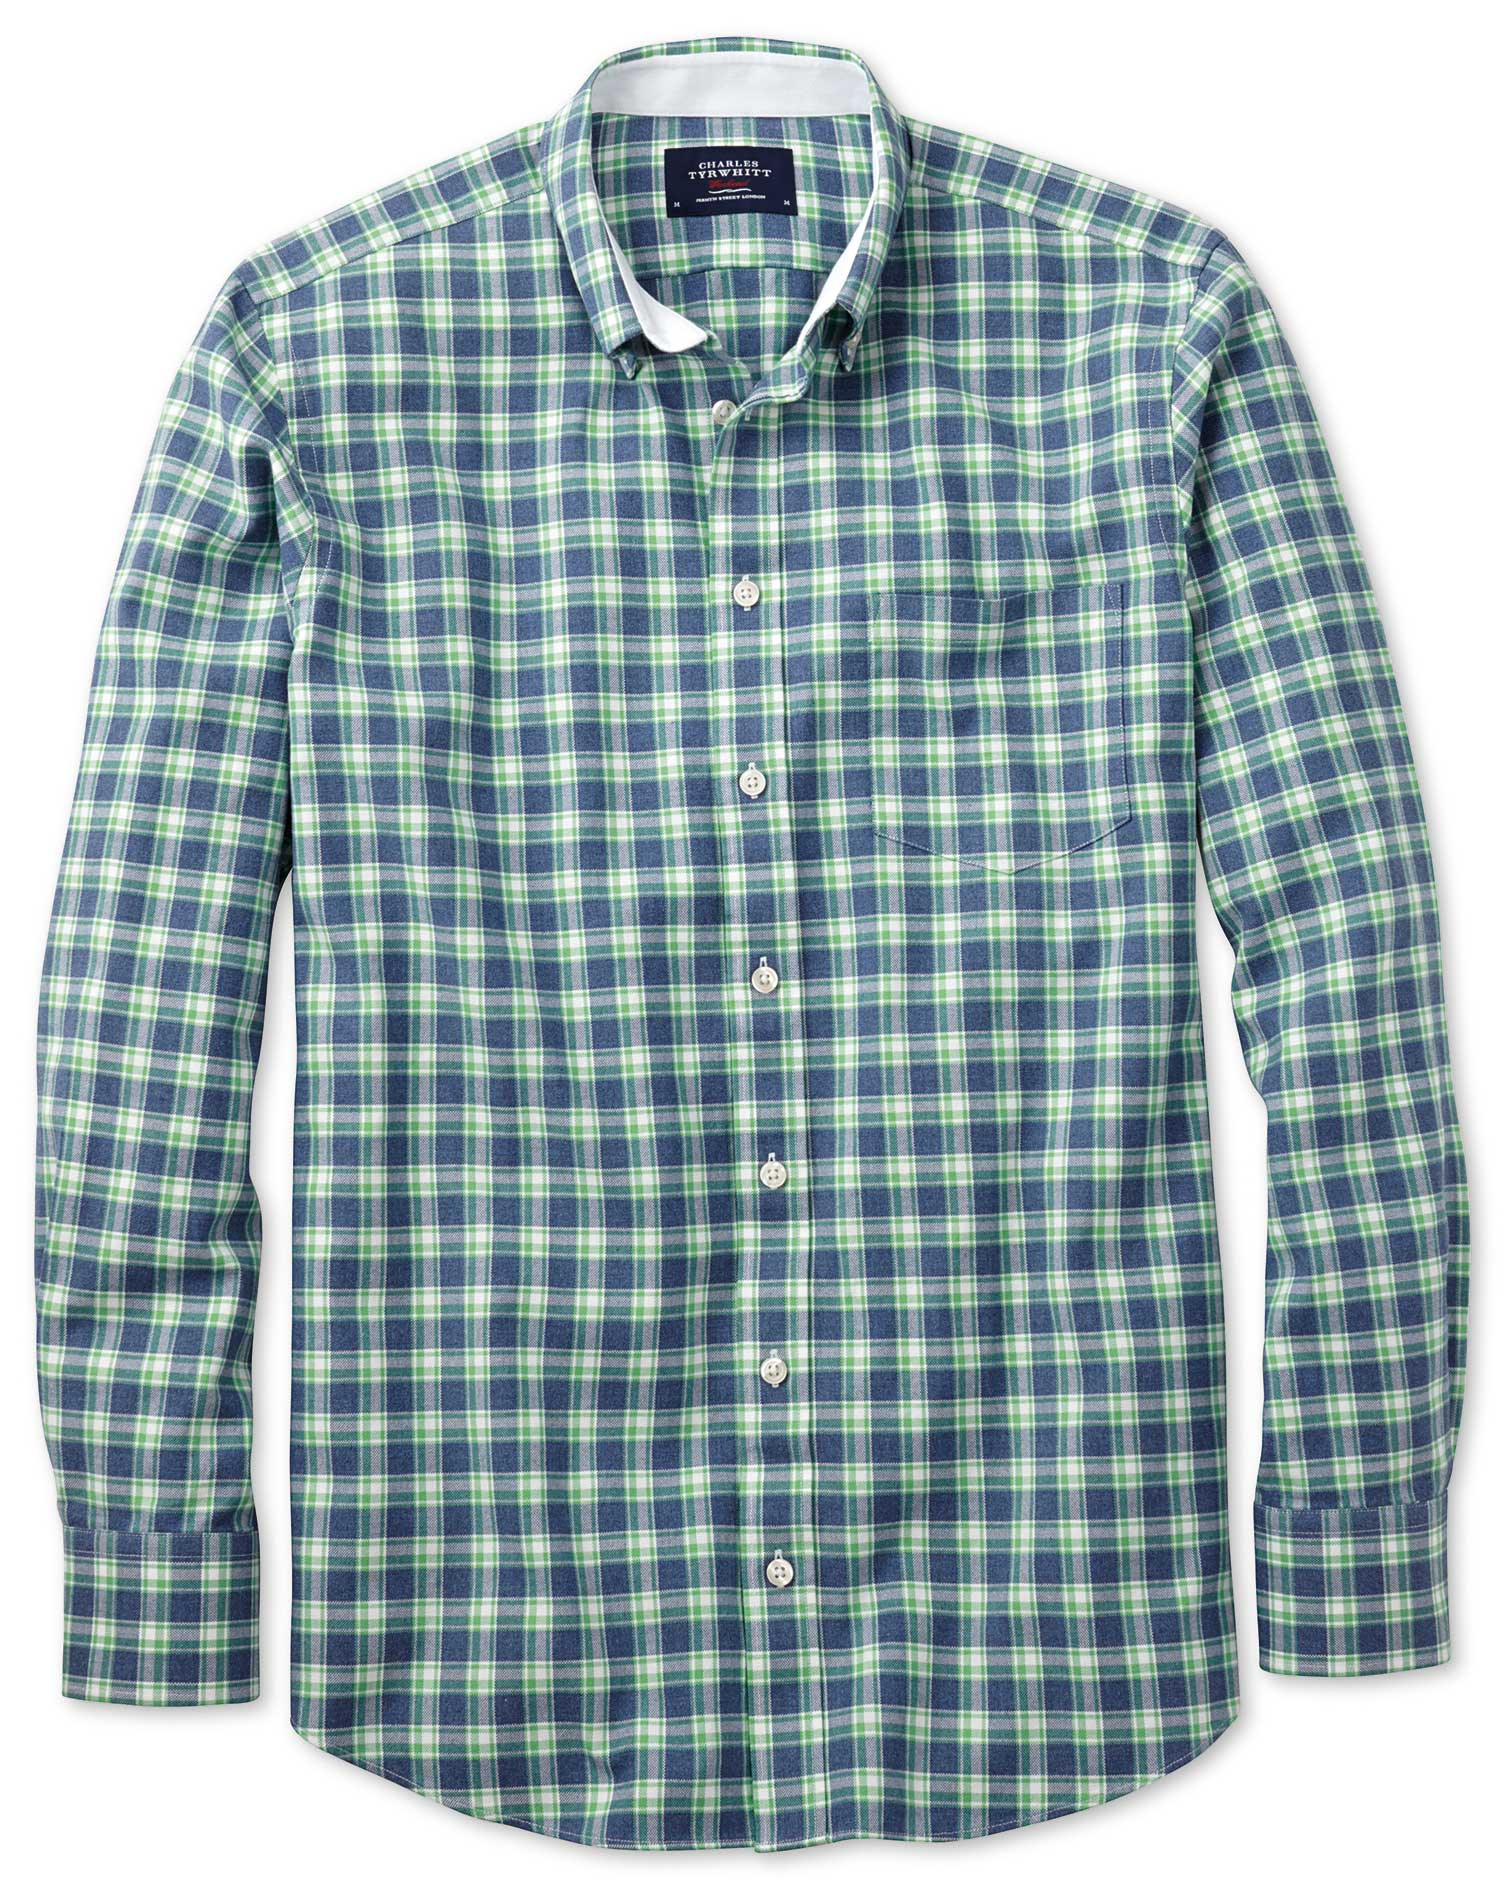 Slim Fit Blue and Green Check Washed Oxford Cotton Shirt Single Cuff Size Large by Charles Tyrwhitt